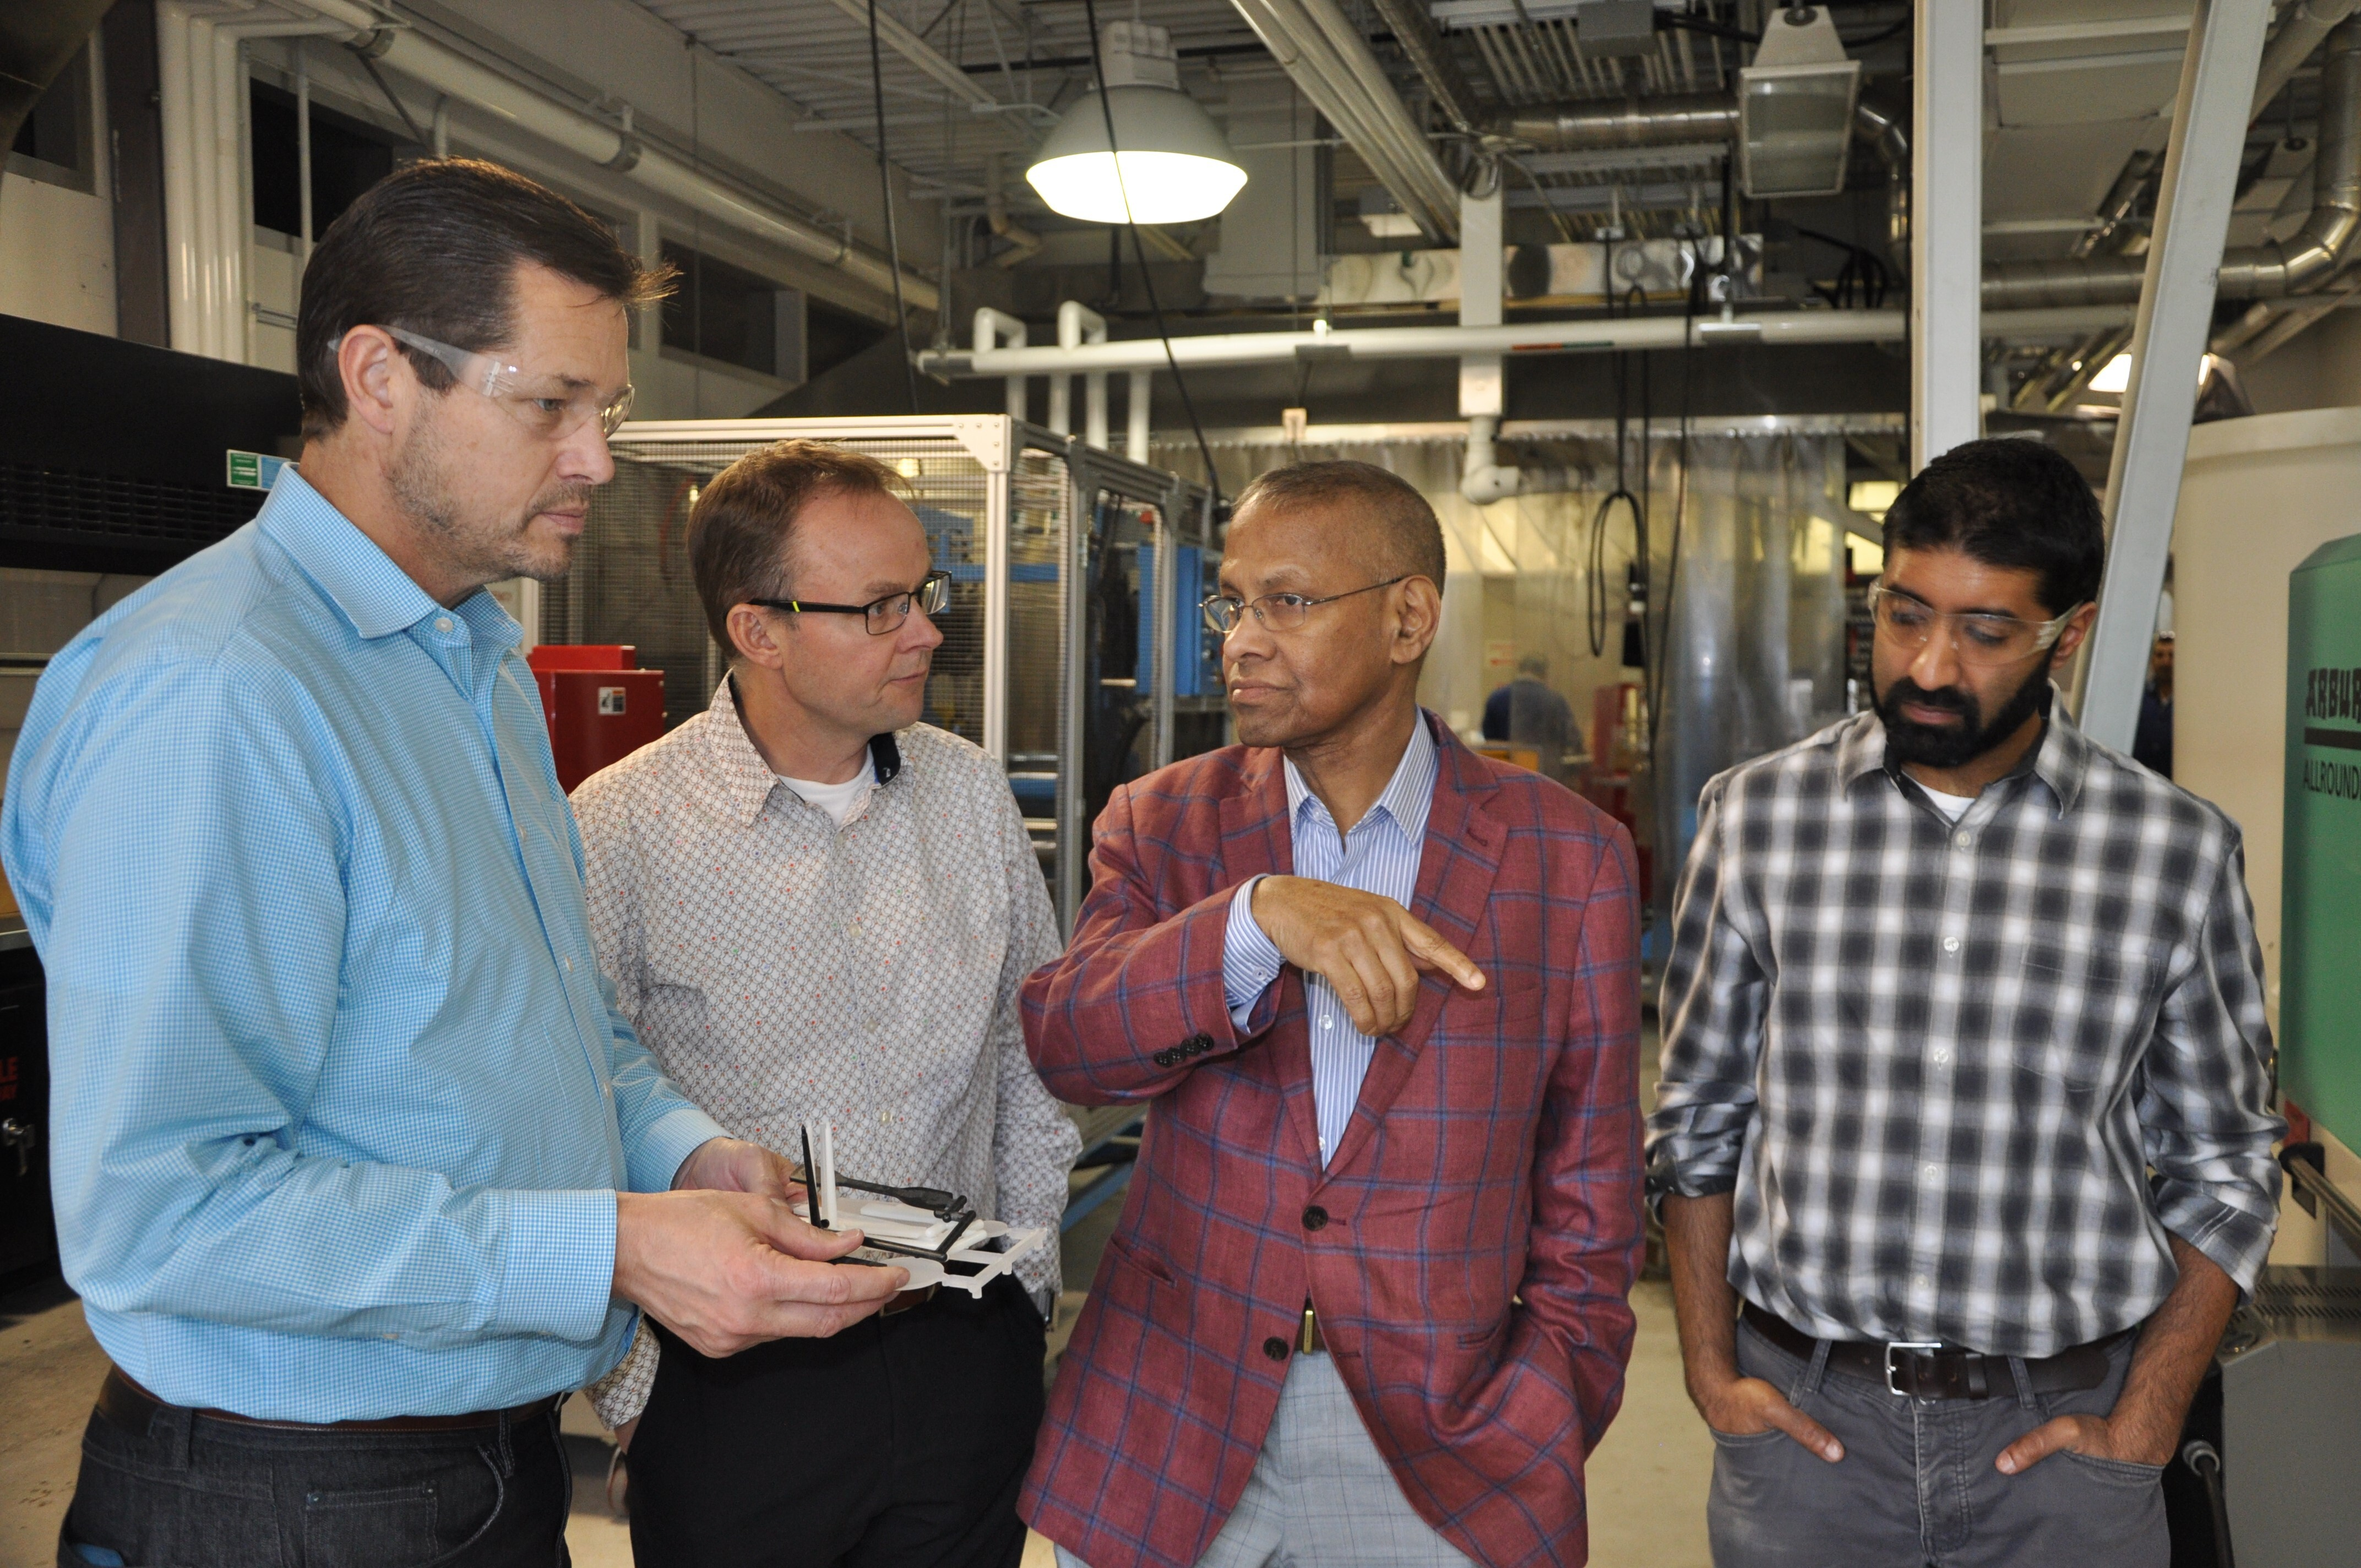 Image - Prof. Amar Mohanty giving a tour of the BDDC to representatives from Ecosynthetix